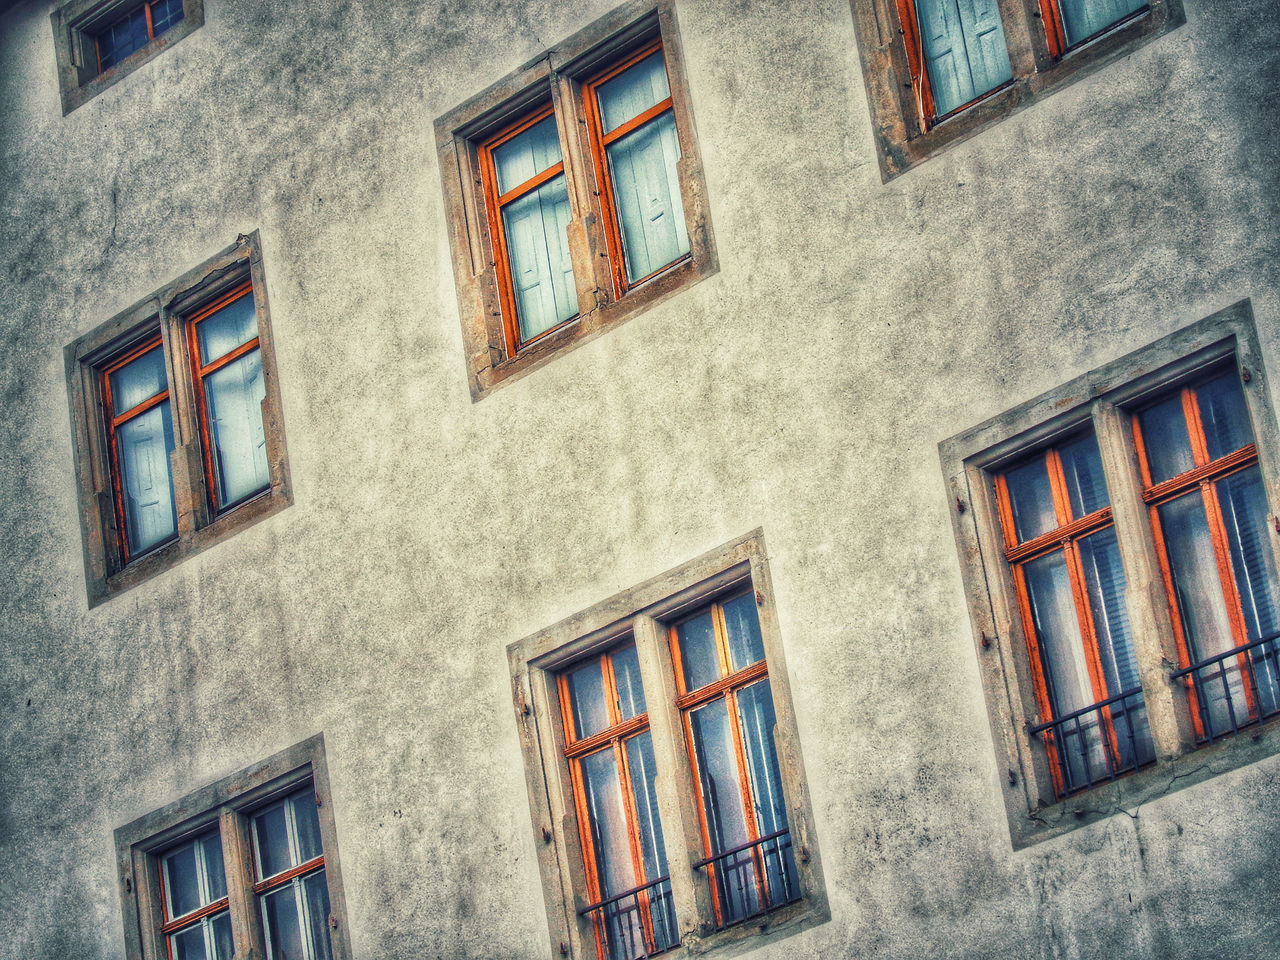 window, architecture, building exterior, building, residential district, built structure, no people, low angle view, day, outdoors, city, house, wall - building feature, glass - material, nature, cloud - sky, facade, multi colored, old, townhouse, row house, apartment, window frame